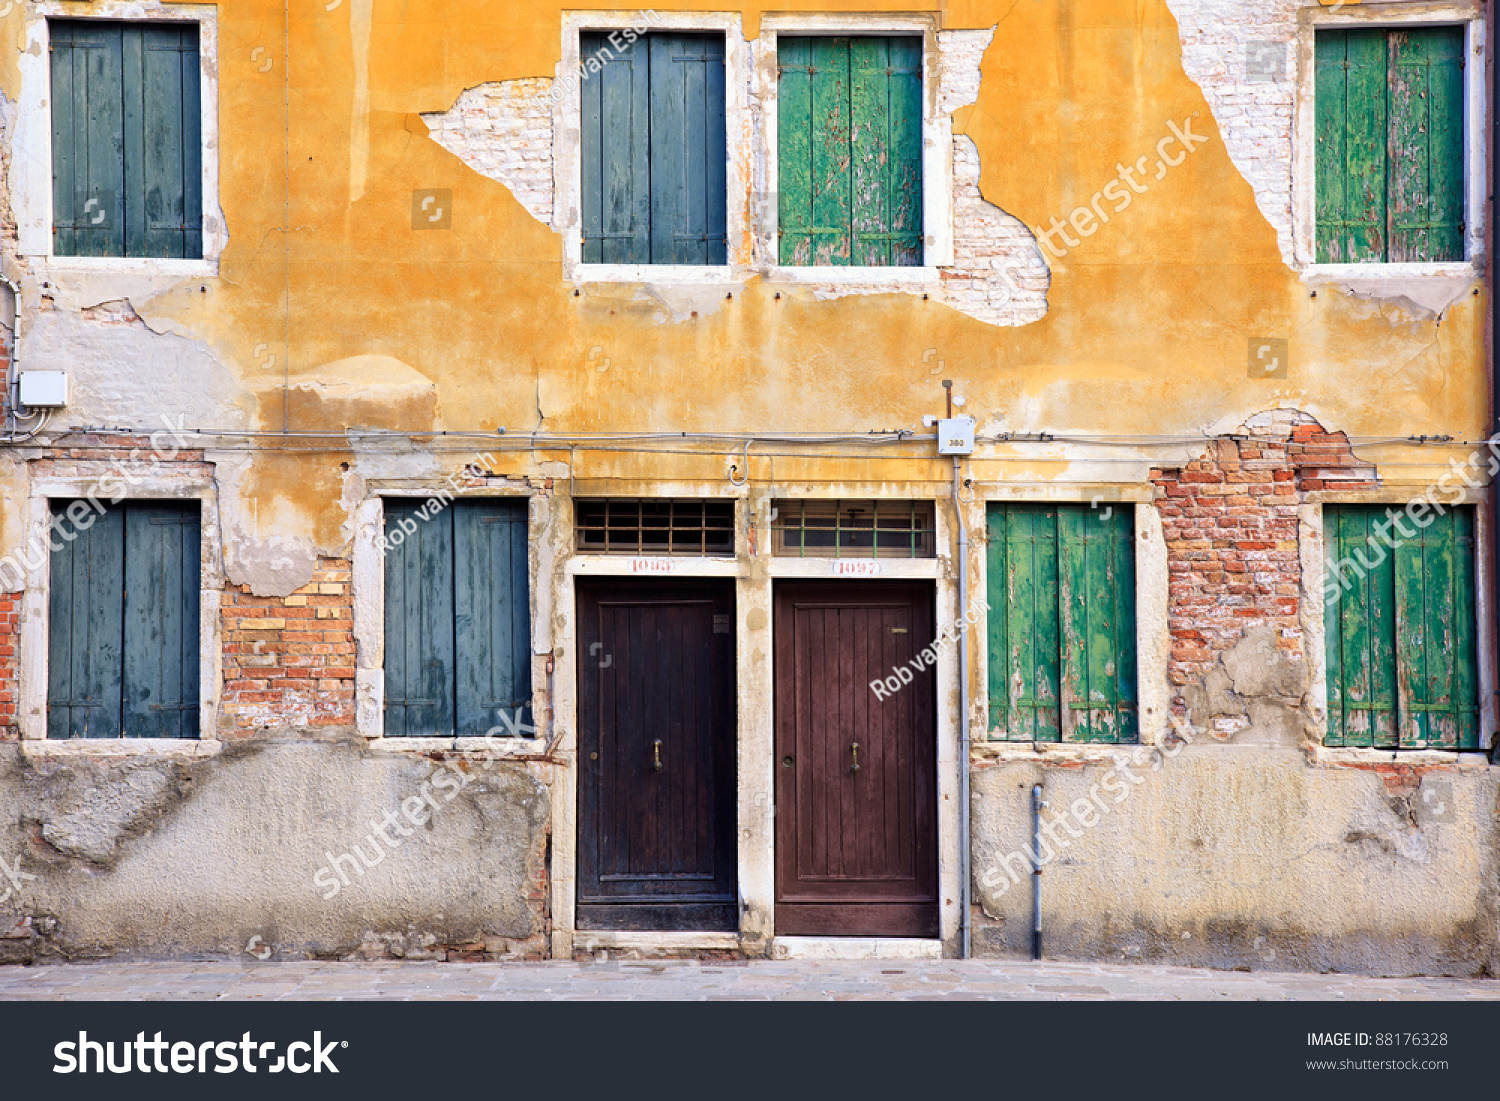 Typical Image Exterior Row Houses Venice Stock Photo